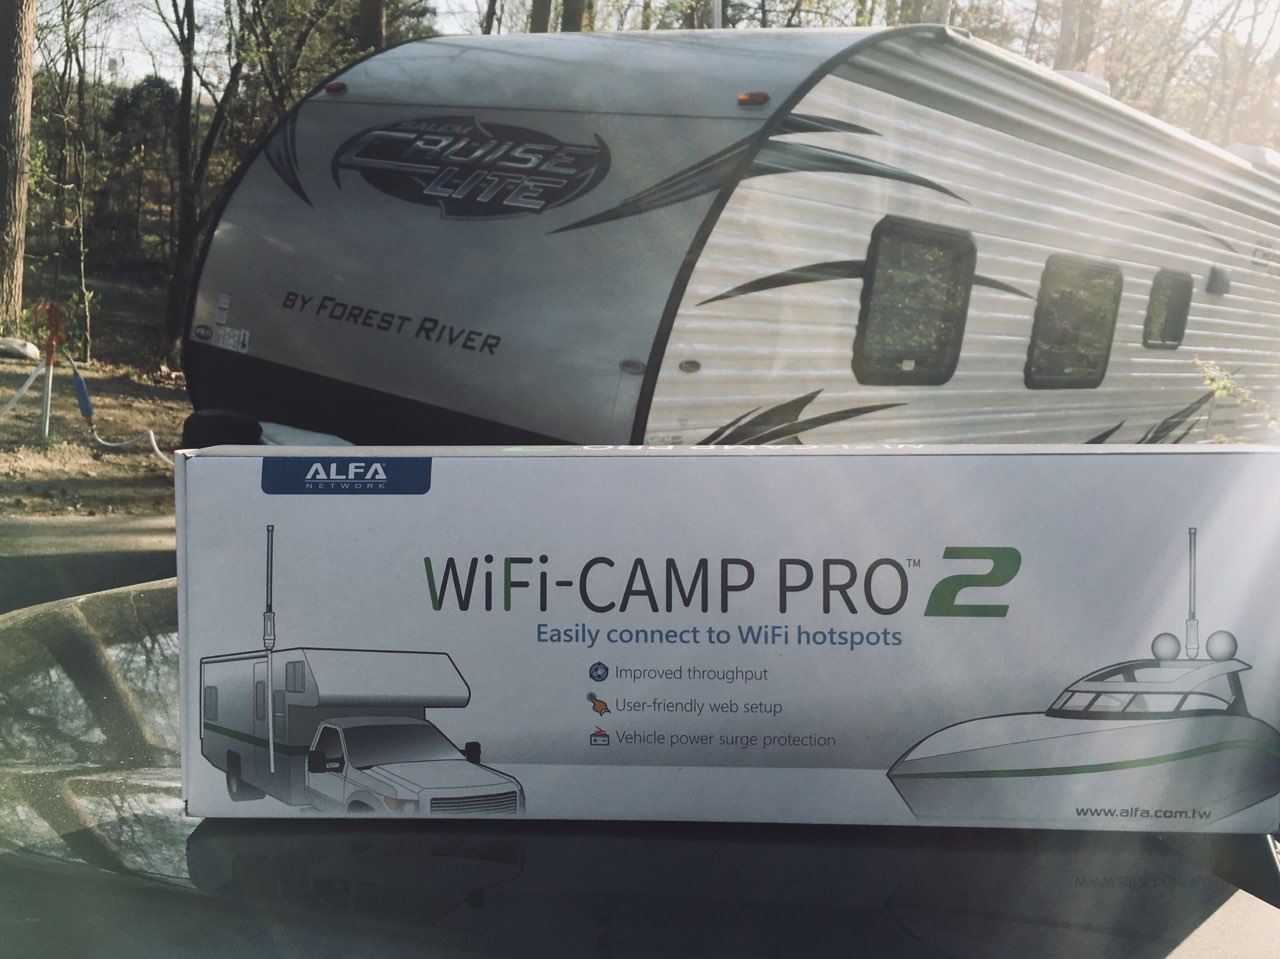 WiFIiCamp Pro 2 Unboxing and Review